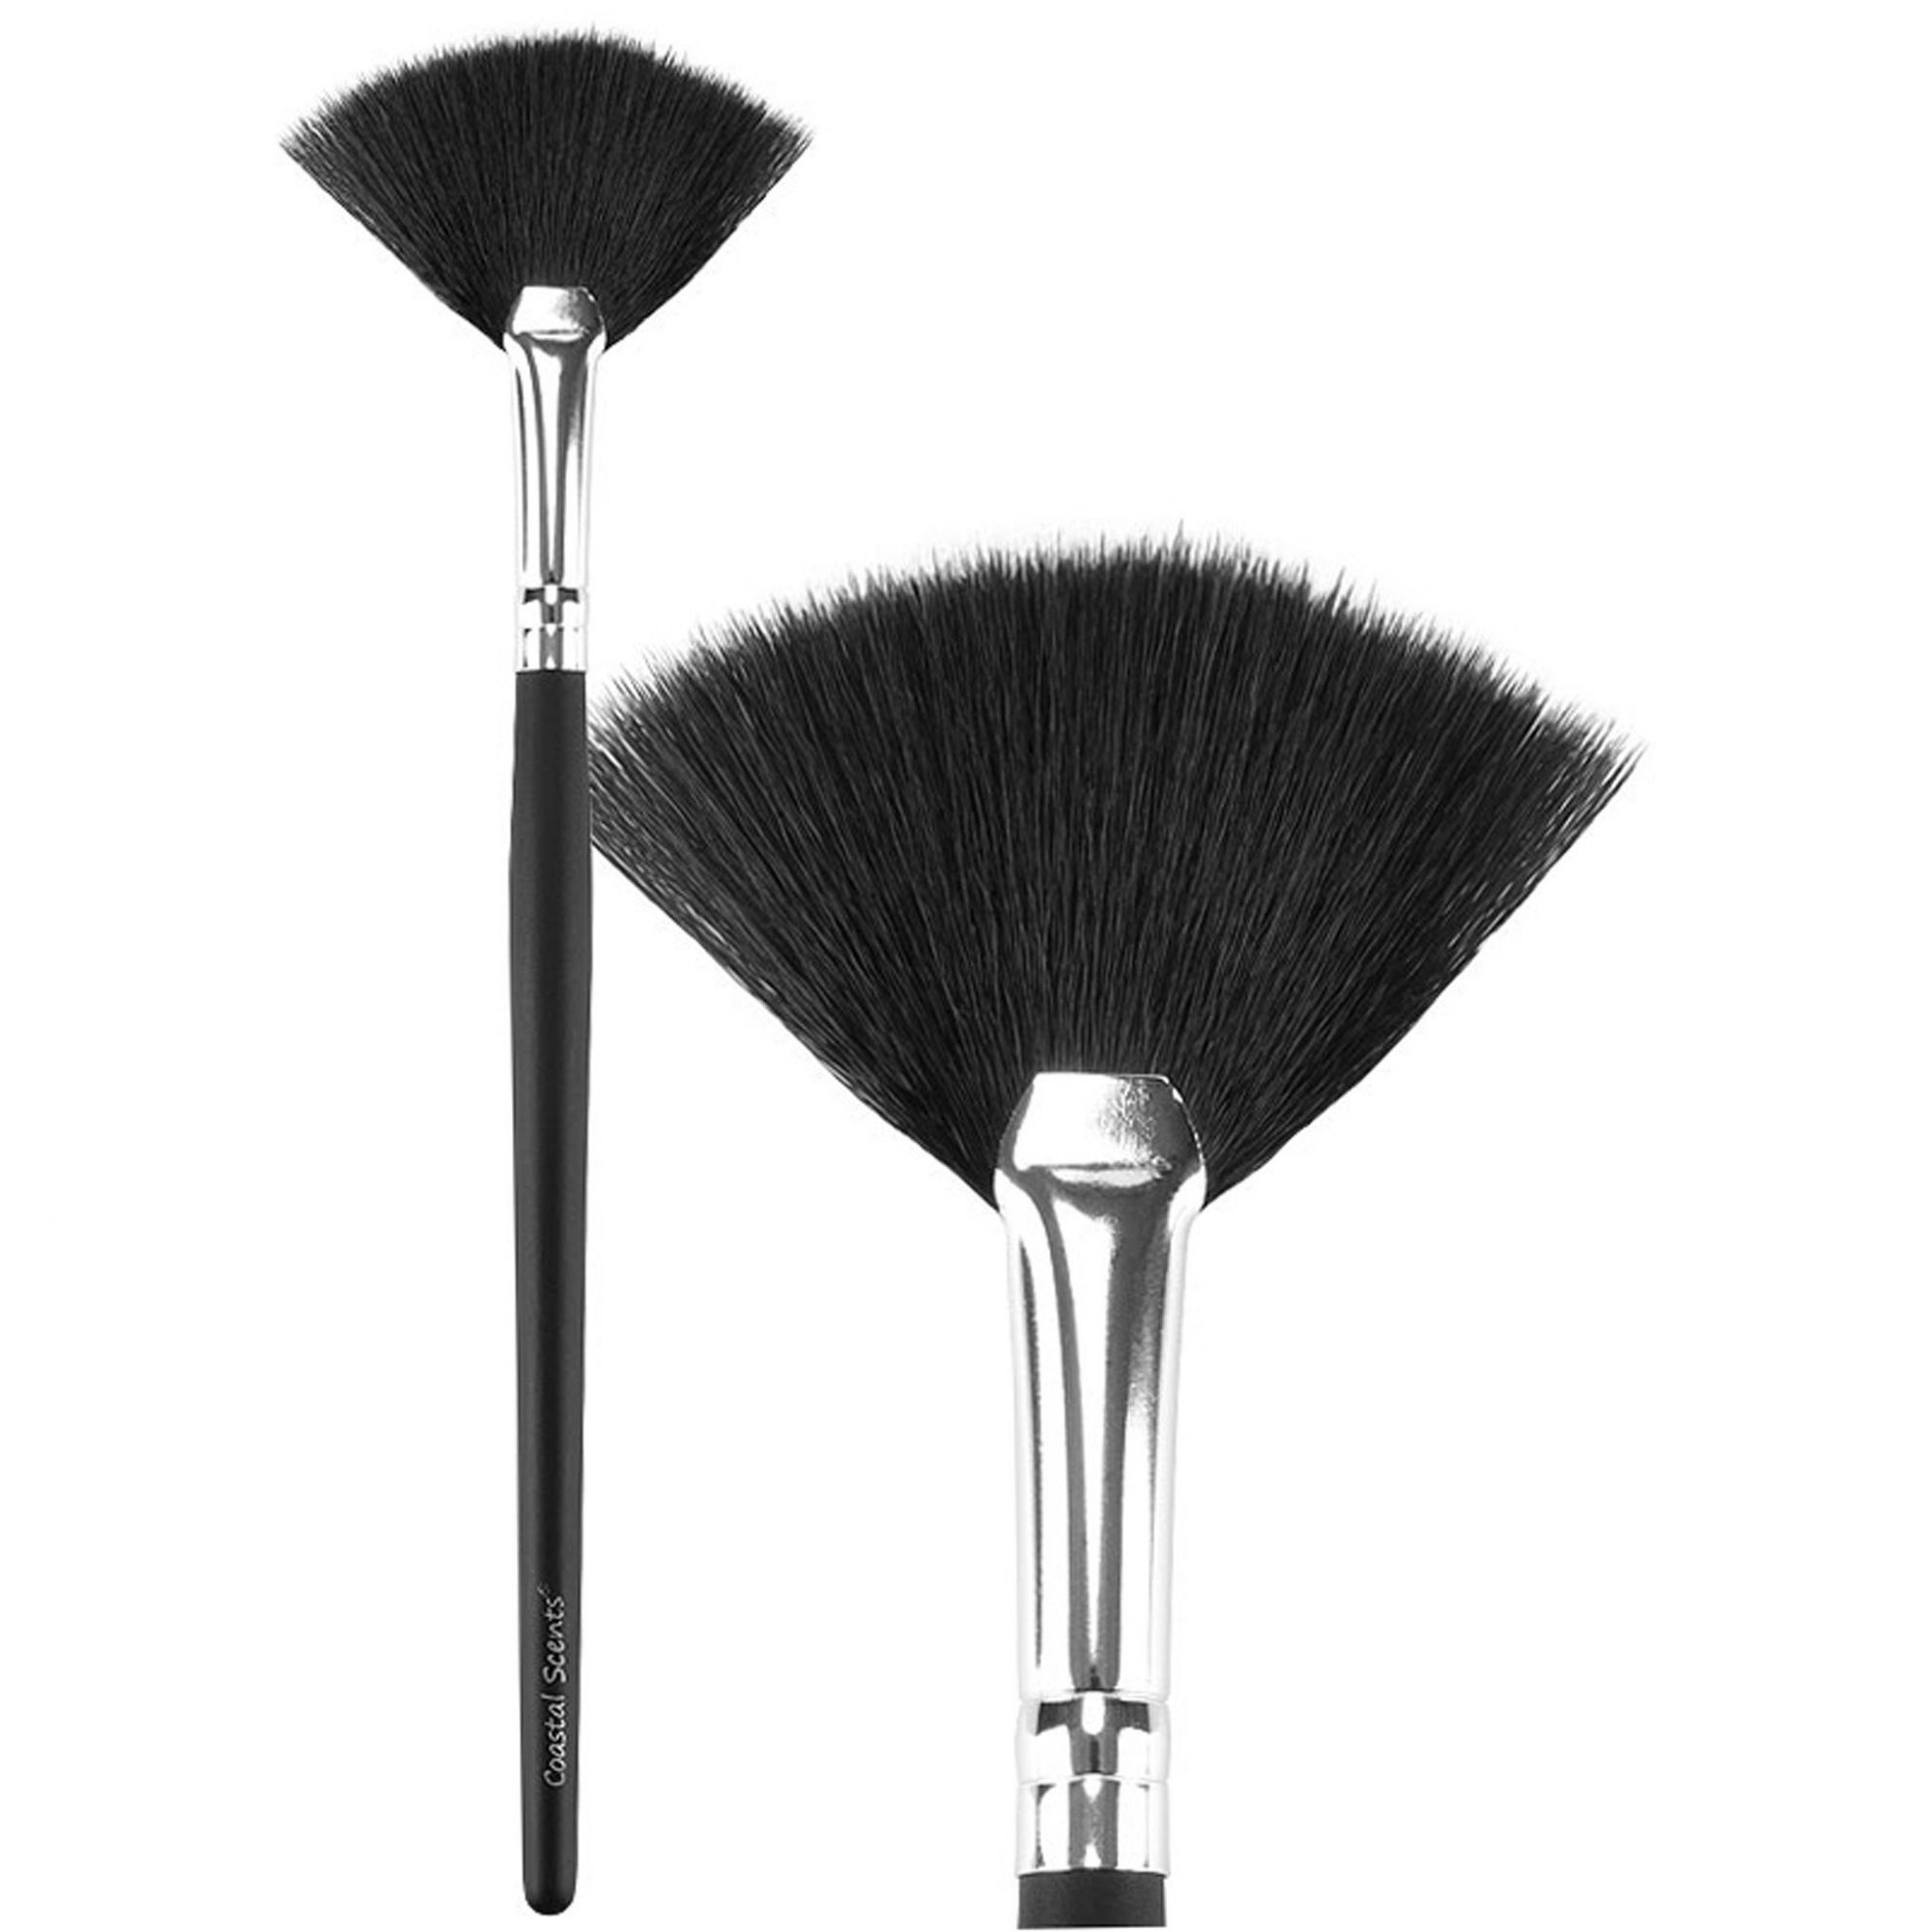 S39 - Classic Small Fan Brush Synthetic | Coastal Scents